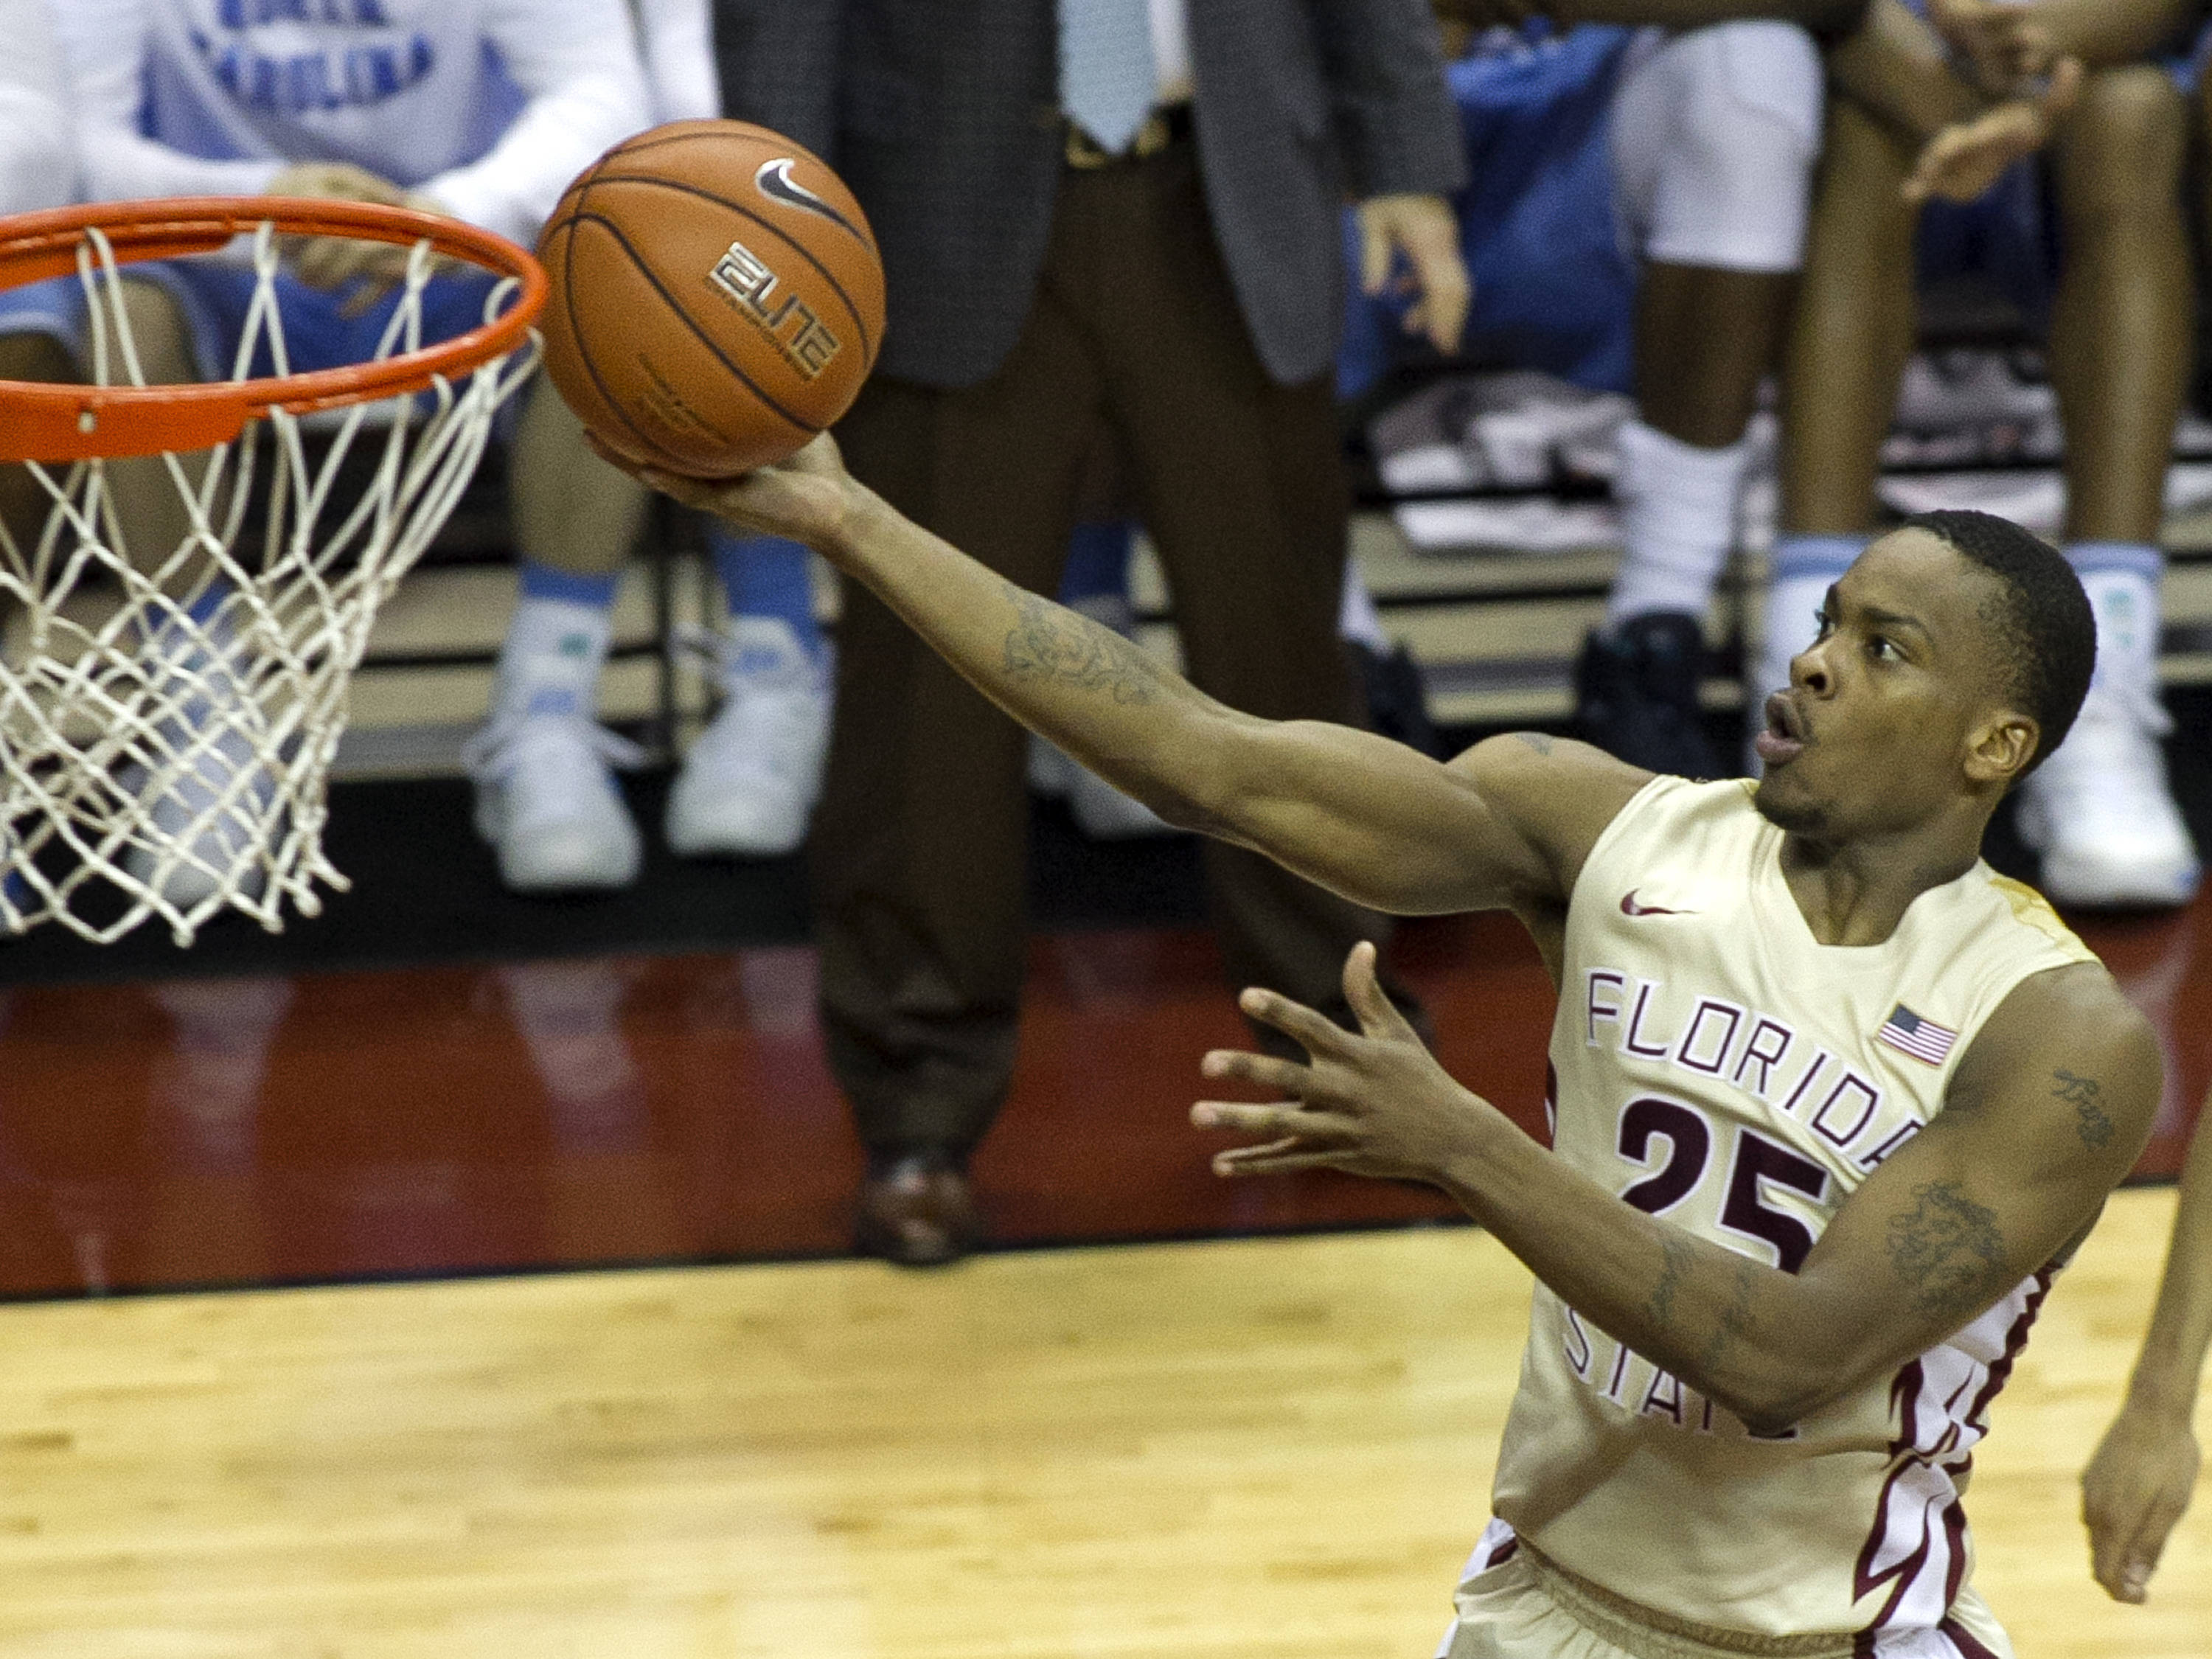 Aaron Thomas (25) reaches for his lay-up, FSU vs North Carolina, 2-17-14, (Photo's by Steve Musco)